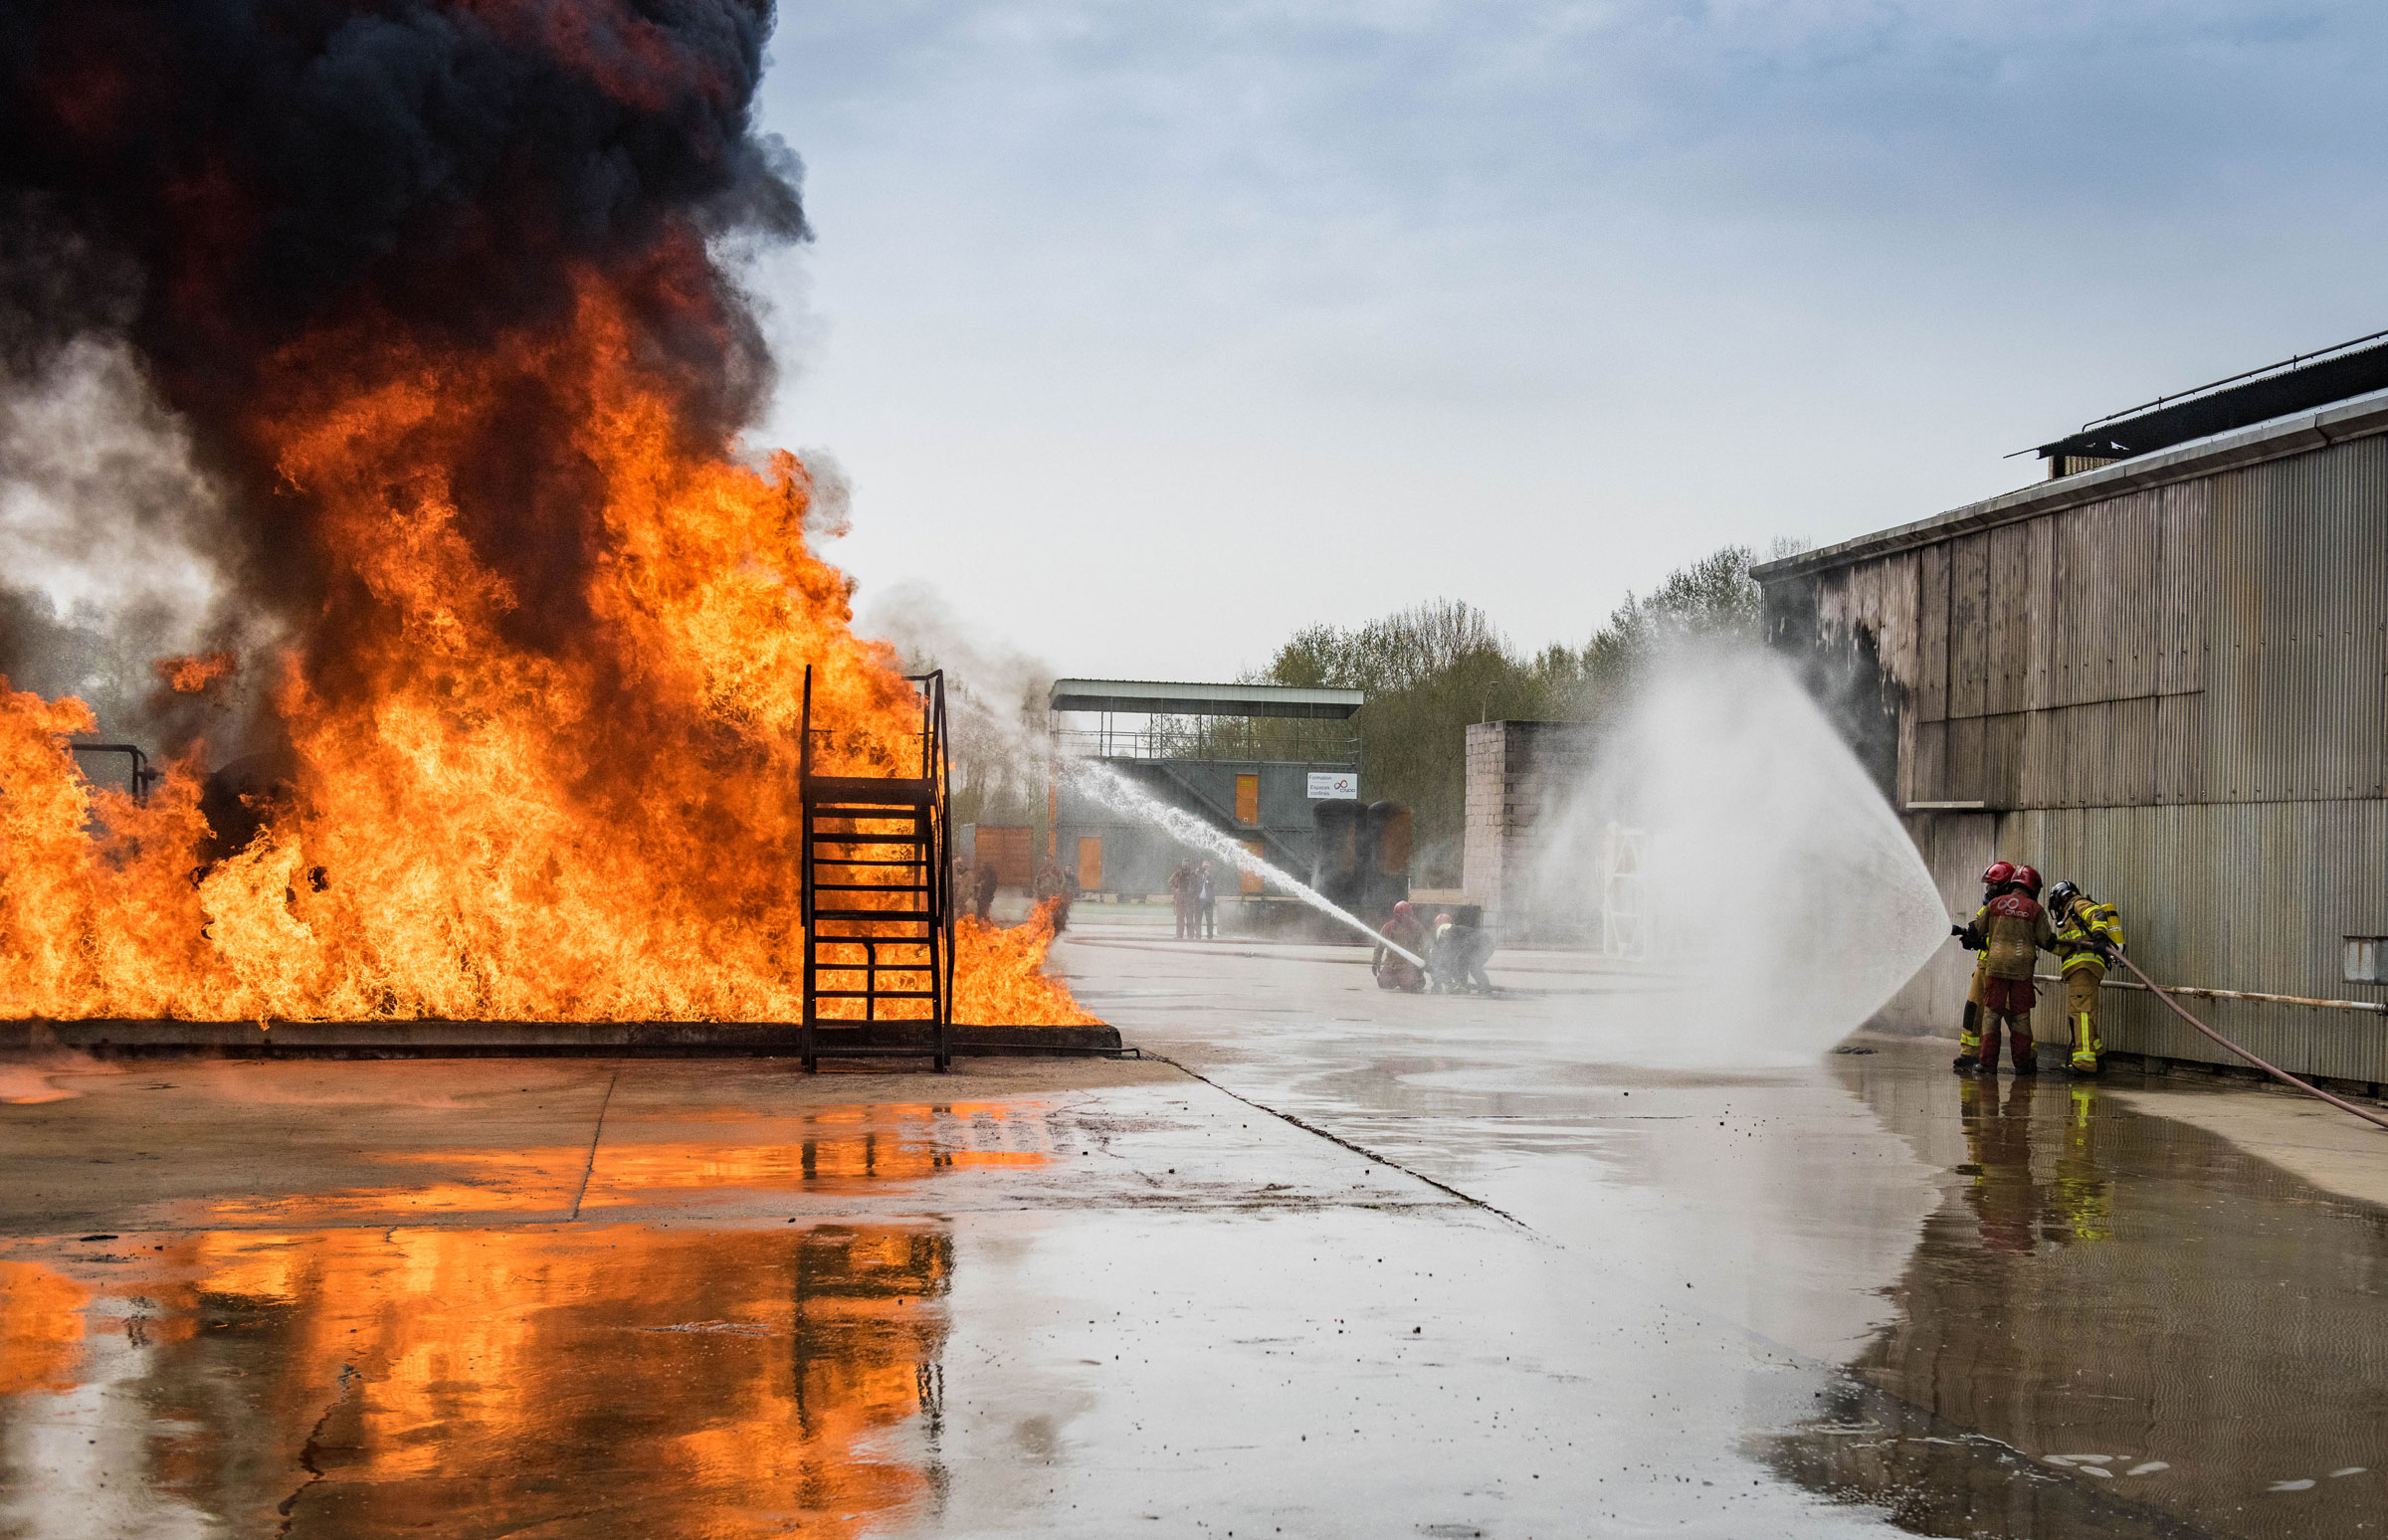 hydrocarbon fire training exercise